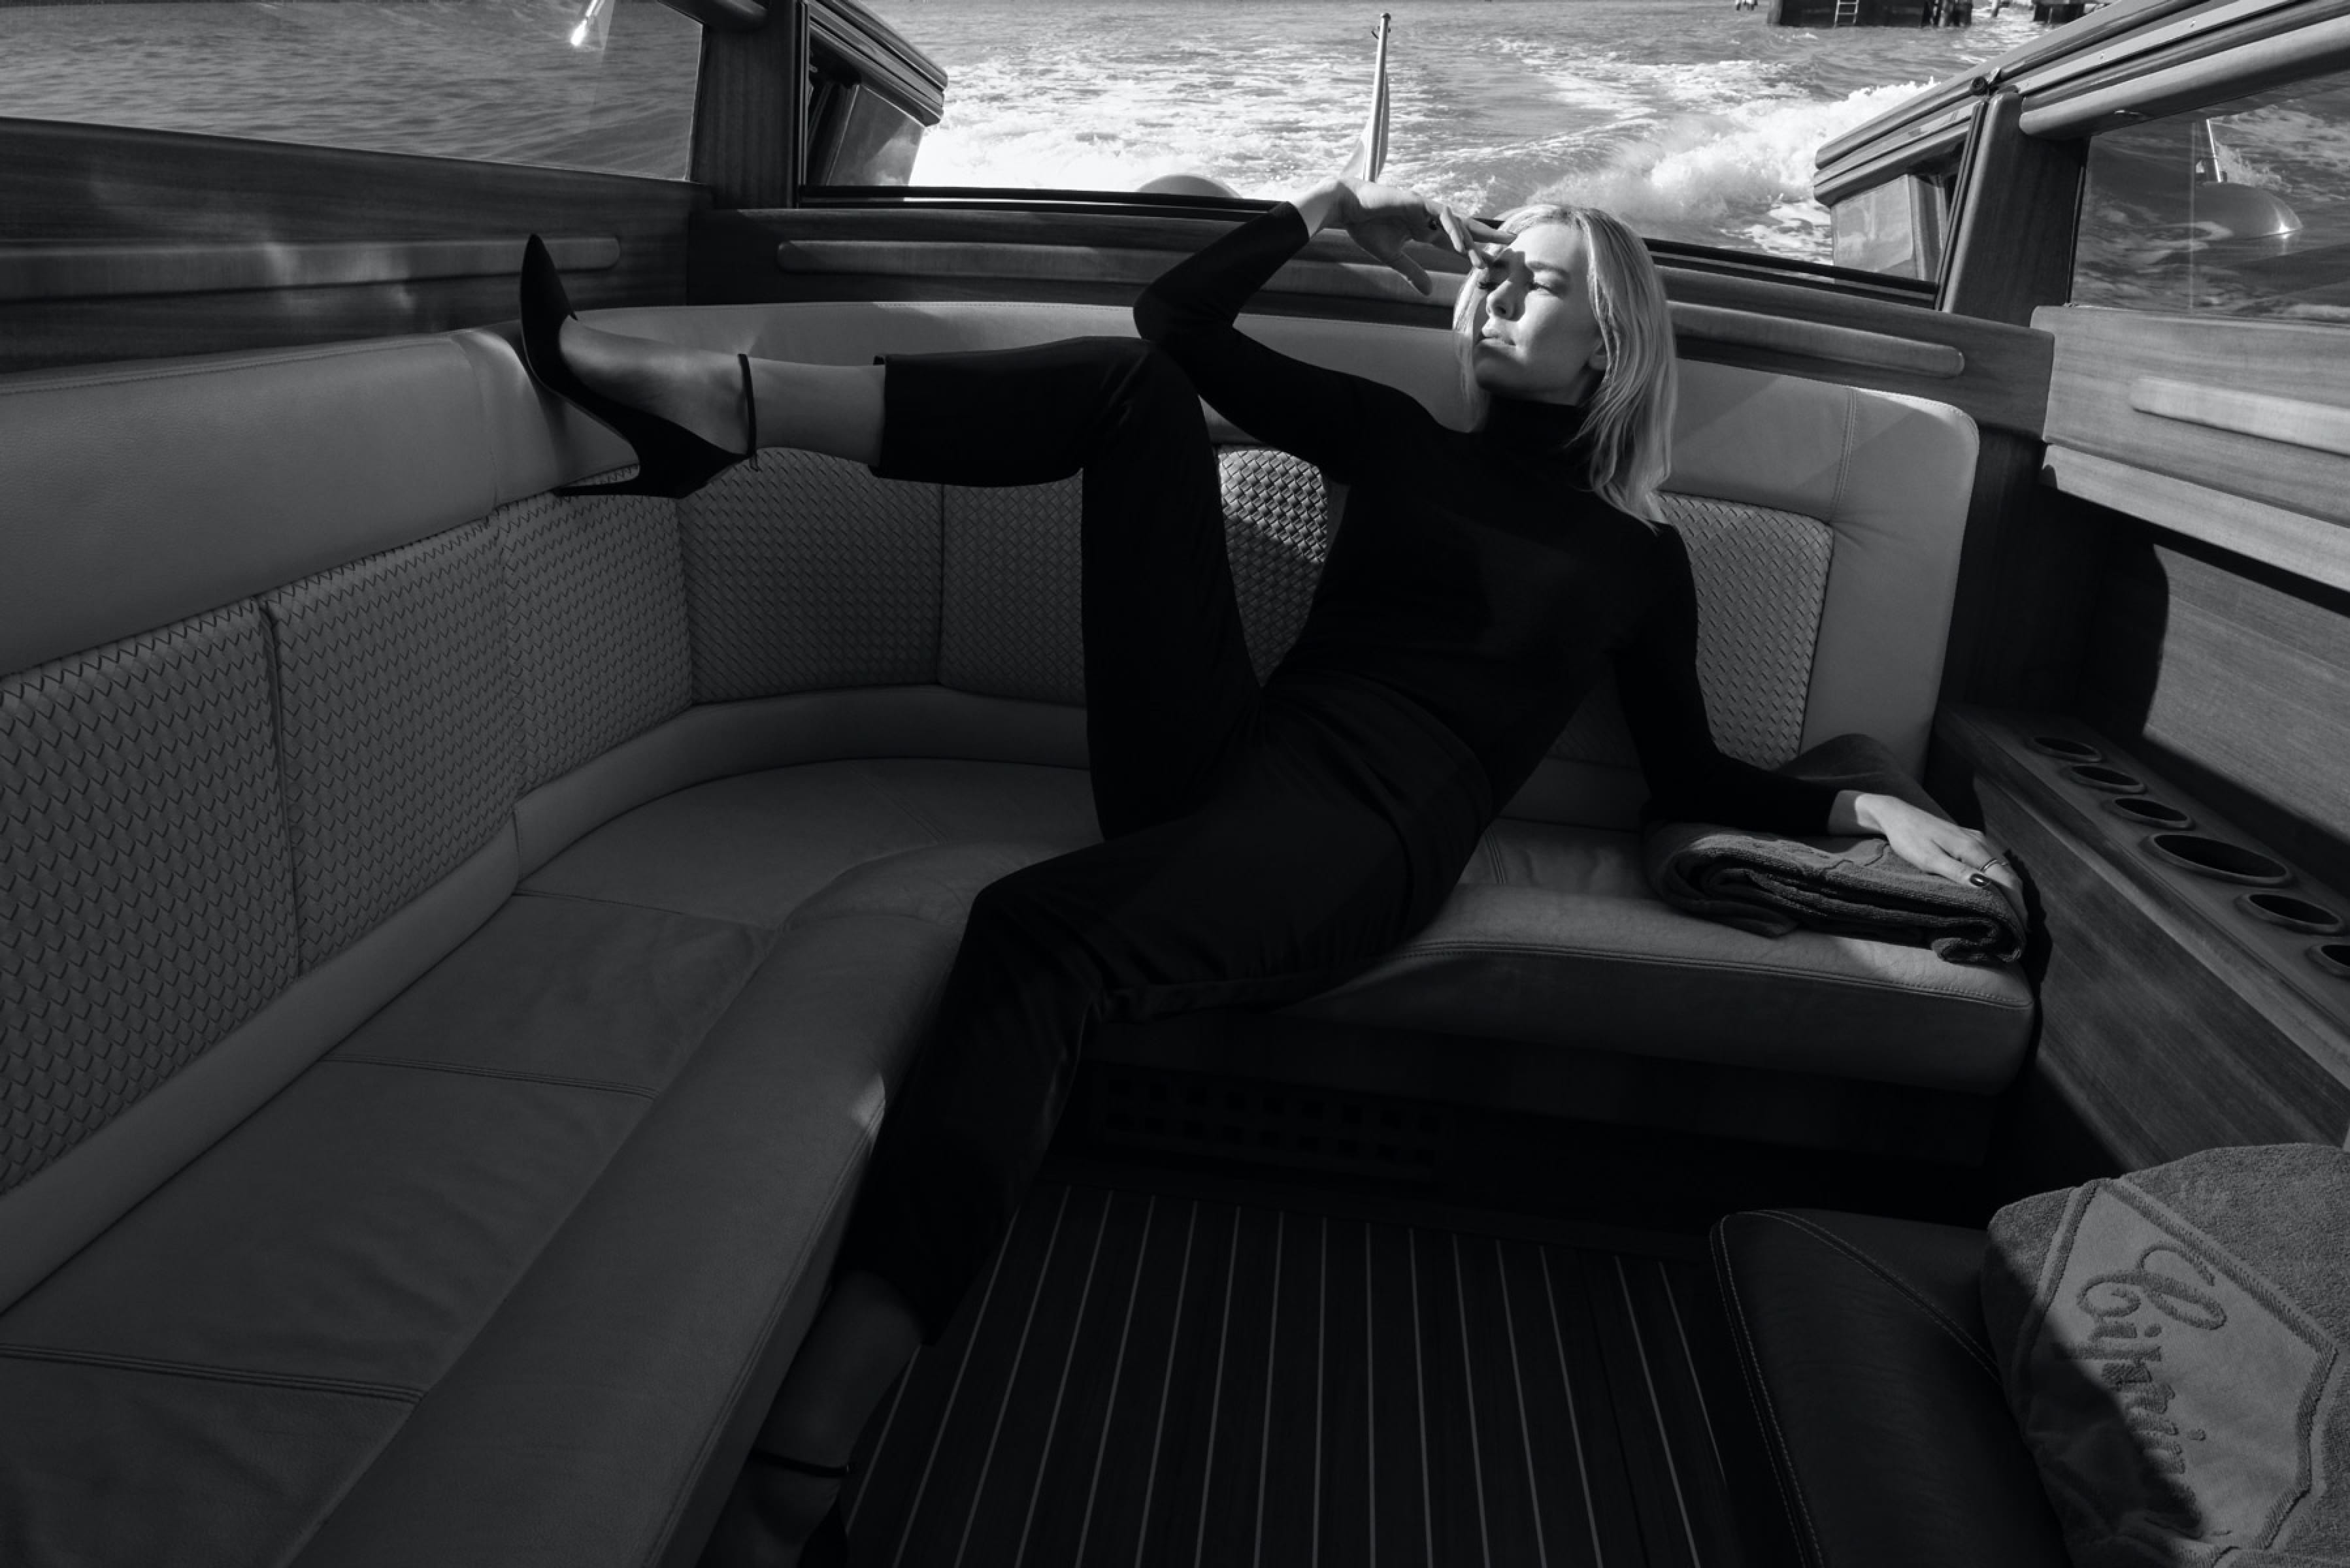 Vanessa Kirby lounges inside the boat, pressing a black stiletto against the cream-colored seats.